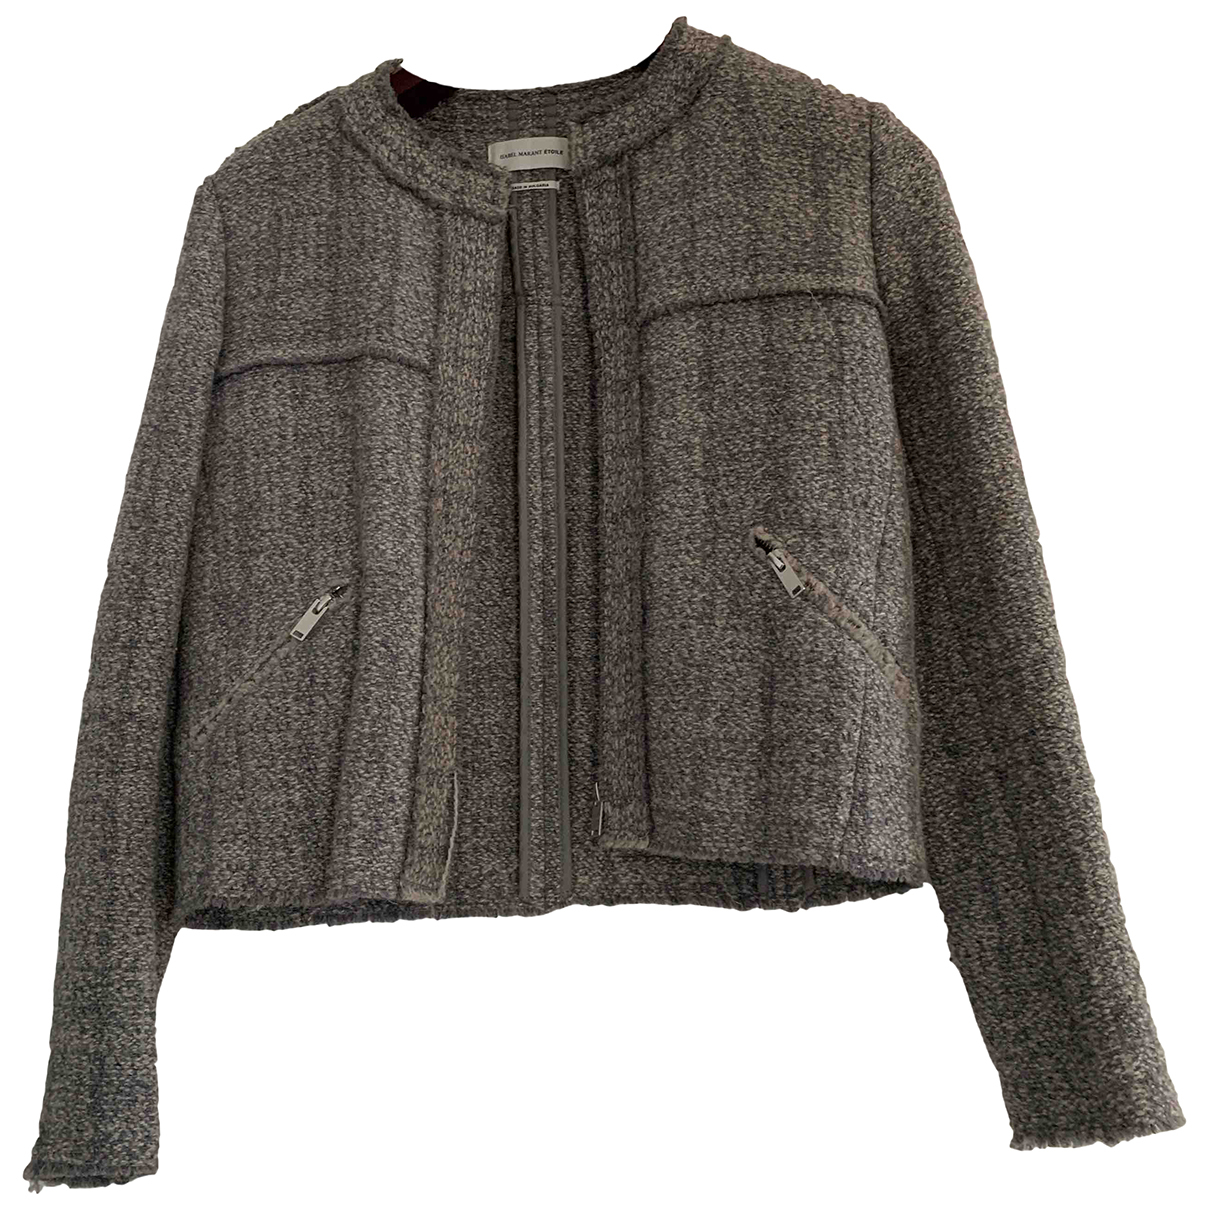 Isabel Marant Etoile \N Grey Wool jacket for Women 36 FR